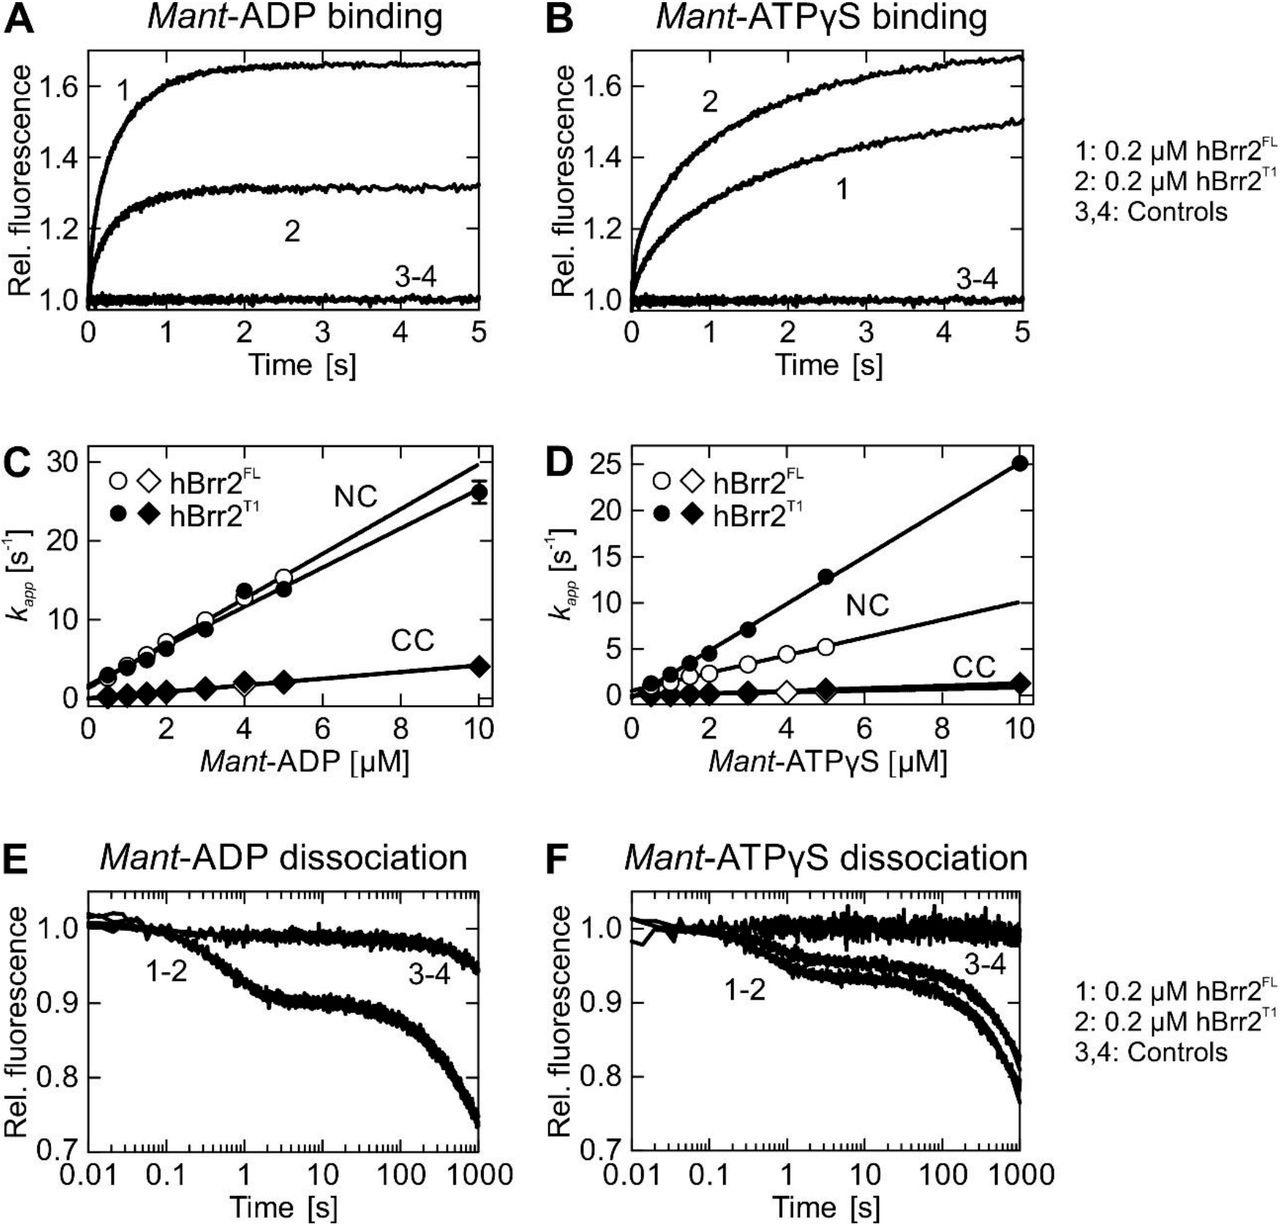 Kinetics of mant-ADP and mant -ATPγS interaction with hBrr2 FL and hBrr2 T1 . A and B . Time courses of 5 μM mant -ADP ( A ) or man t-ATPγS ( B ) binding to hBrr2 FL (1; 0.2 μM) and hBrr2 T1 (2; 0.2 μM) measured by FRET from Trp to mant . Controls were performed with unlabeled ADP or ATPγS (3-4). C and D . Individual nucleotide binding traces were fitted to double exponential equations, and the dependence of the apparent rate constants of the NC (circles) and CC (diamonds) on nucleotide concentration were fitted by a linear equation. Open symbols, hBrr2 FL ; closed symbols, hBrr2 T1 . The cassettes of hBrr2 FL and hBrr2 T1 bind nucleotides with different velocities as observed for the variants containing either one of the cassettes, hBrr2 NC and hBrr2 CC . While the CC binds mant -ADP and mant -ATPγS with similar rates, the NC in hBrr2 T1 binds mant -ATPγS faster than the NC in hBrr2 FL . Values represent means ± SD of at least three independent measurements. E and F . Dissociation of 5 μM mant-ADP ( E ) or mant -ATPγS ( F ) from hBrr2 FL (1; 0.2 μM) and hBrr2 T1 (2; 0.2 μM) in the presence of the respective unlabeled nucleotide in excess (100 μM). Control experiments (3-4) were carried out in the absence of unlabeled nucleotide.